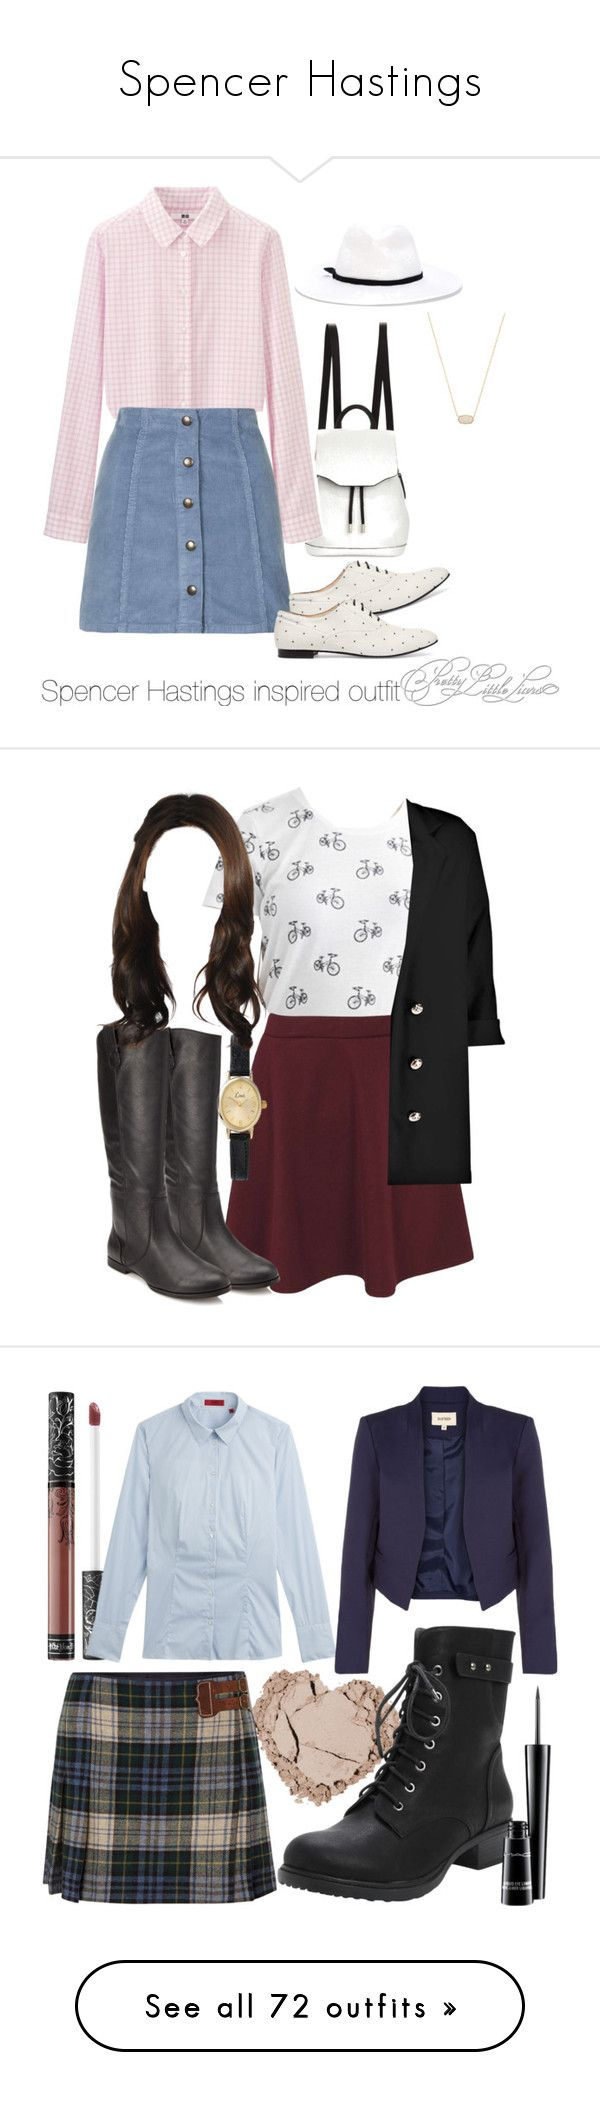 """""""Spencer Hastings"""" by xxoxxo-76 ❤ liked on Polyvore featuring rag & bone, Uniqlo, Topshop, Tod's, Forte Forte, Kendra Scott, bags, handbags, bolsas and purses"""